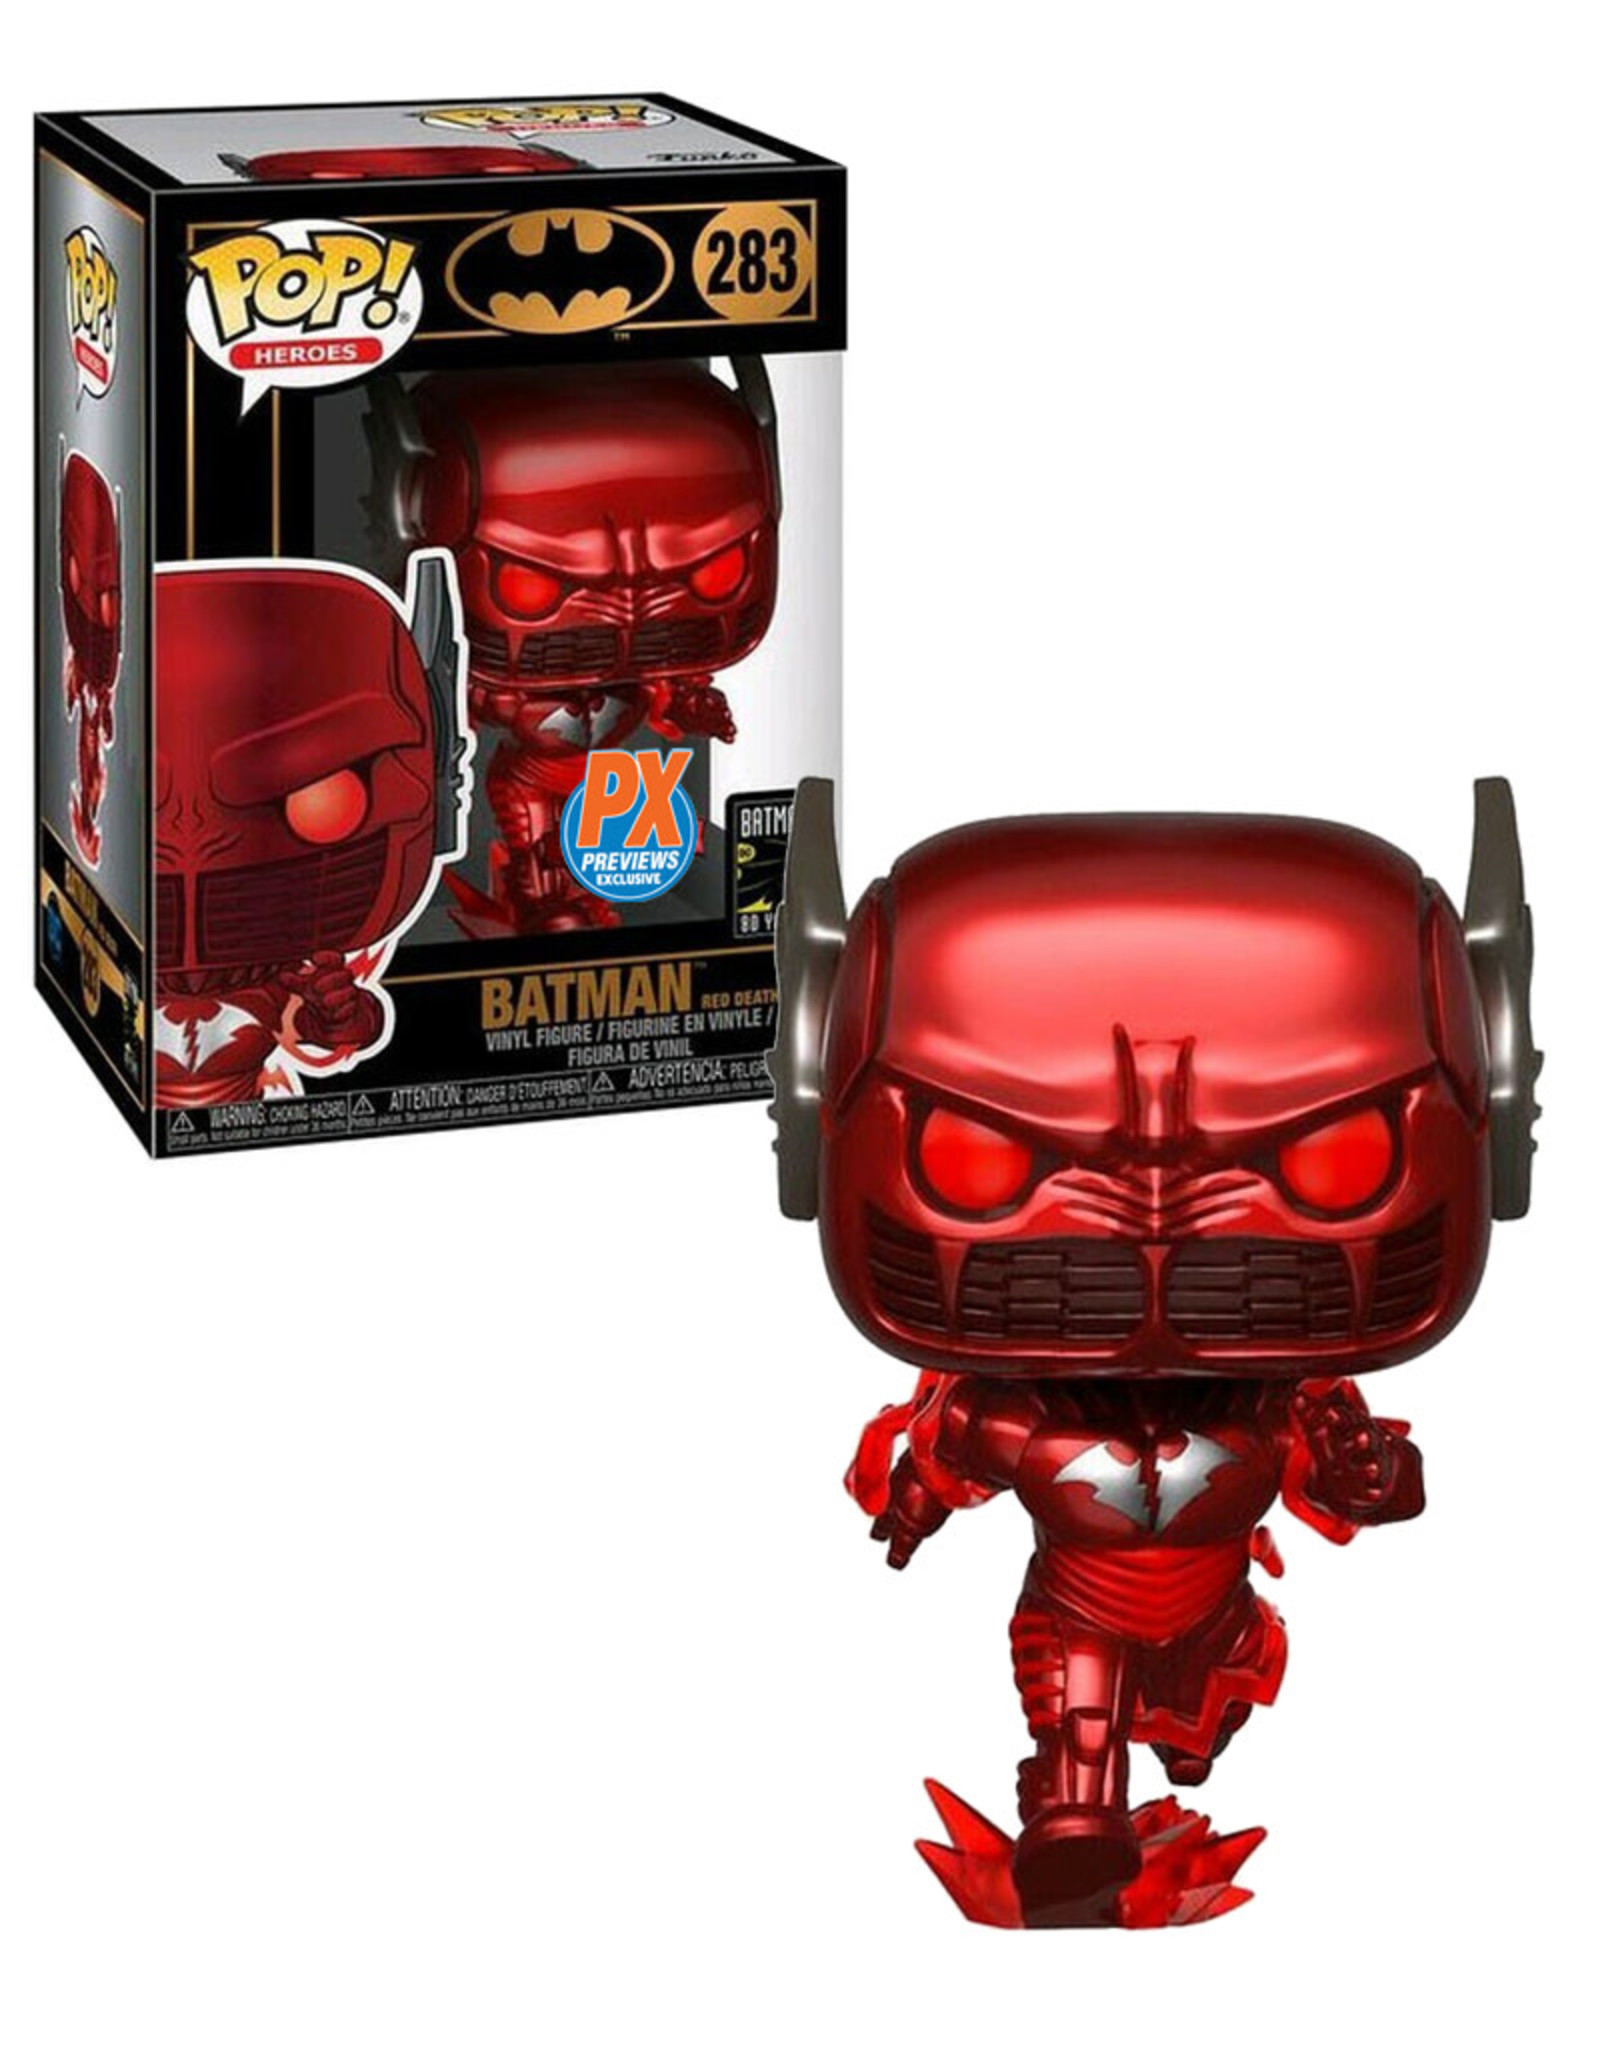 Dc comics Dc Comics 283 ( Funko Pop ) Batman Red Death